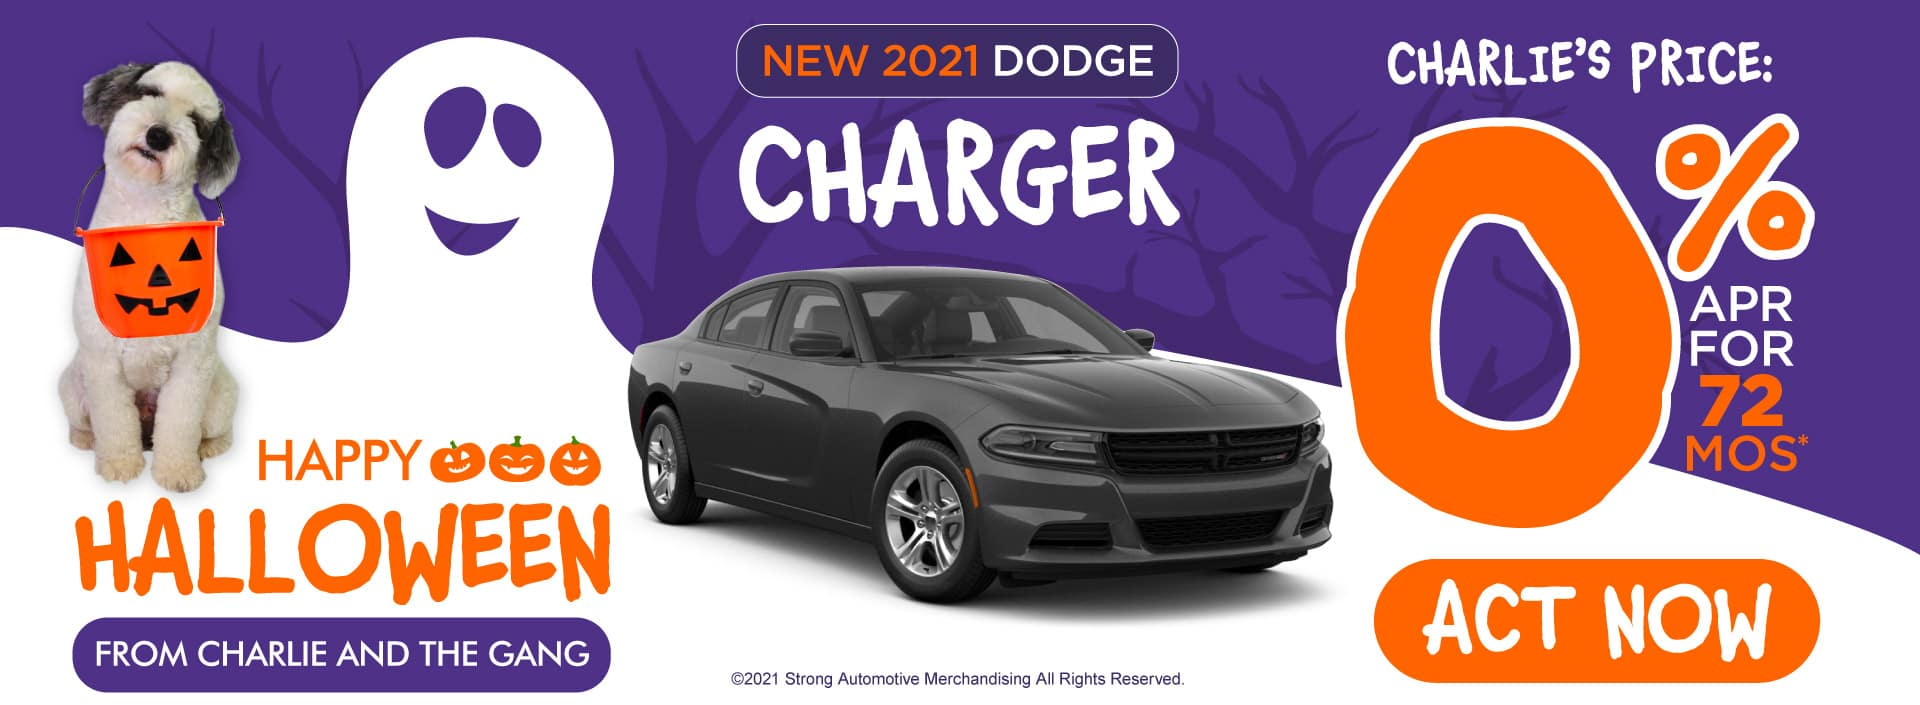 New 2021 Dodge Charger - 0% APR for 72 months - ACT NOW